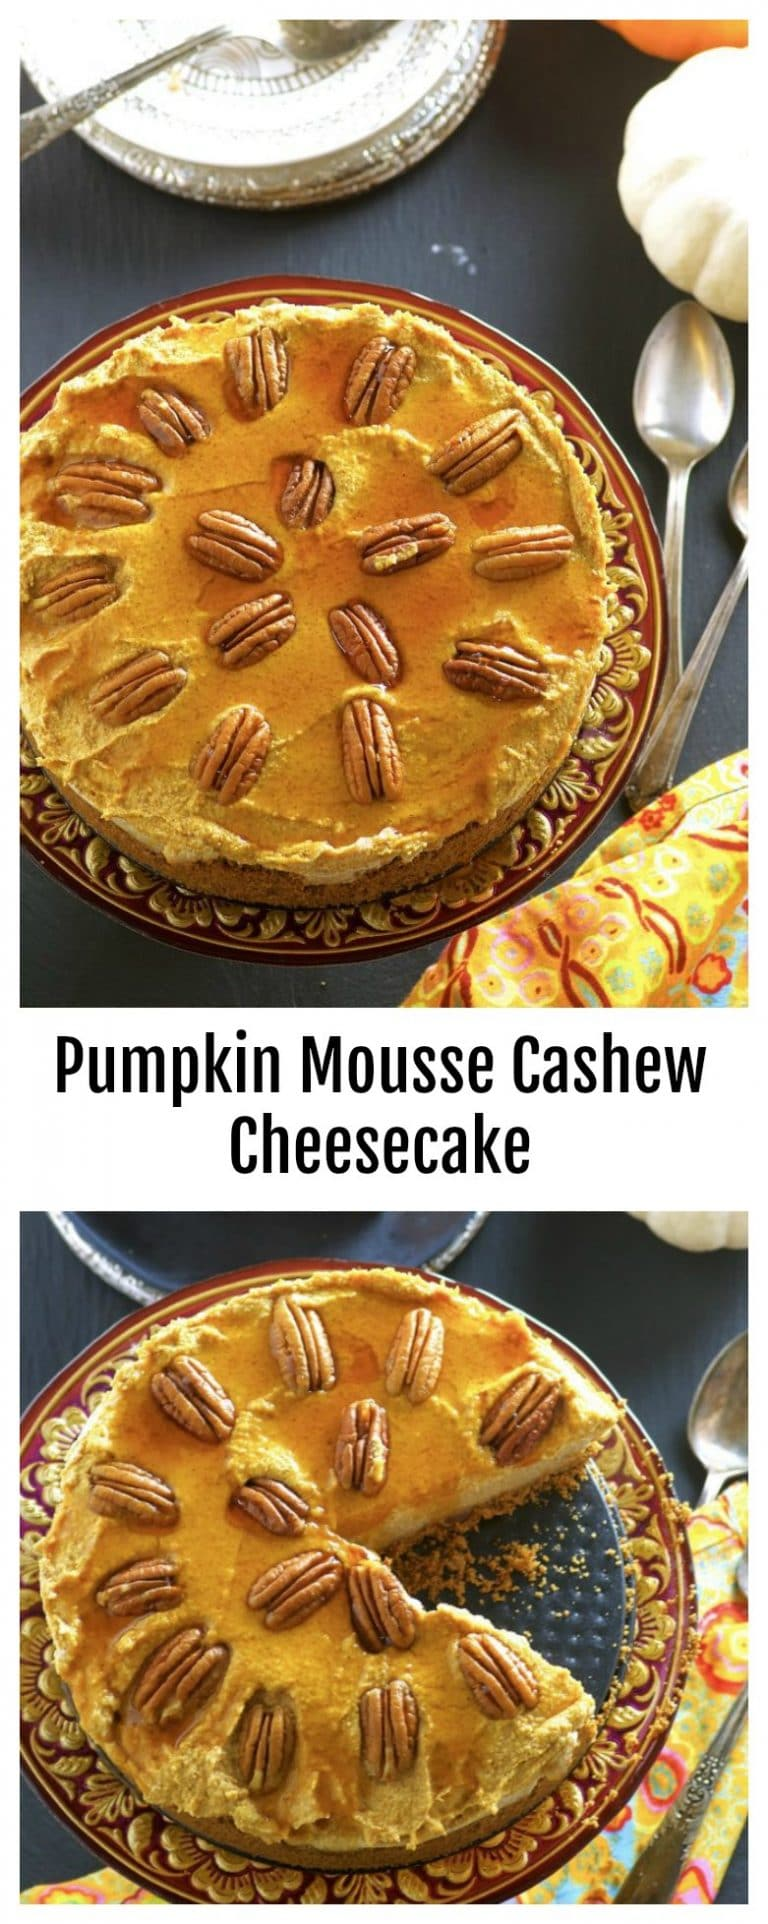 This No-Bake Pumpkin Mousse Cashew Cheesecake has all the pumpkin pie flavors we all love and the creaminess and richness of a traditional cheesecake. All vegan, dairy and gluten free!